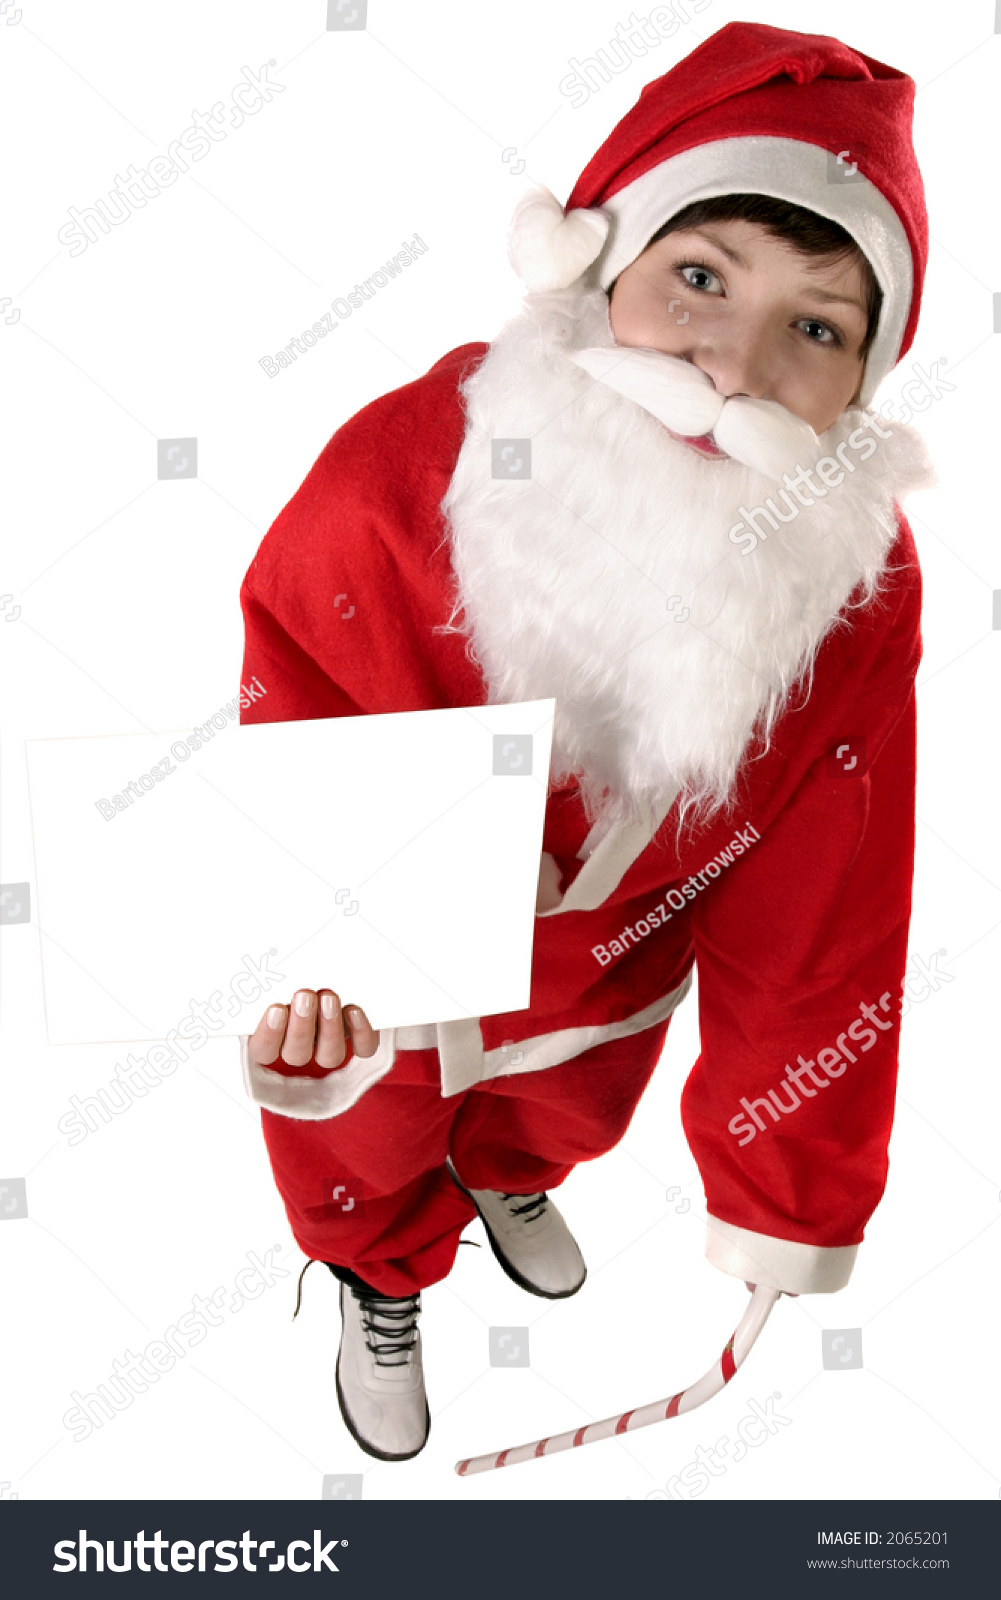 young woman in a red and white santa fancy dress - White Santa Claus